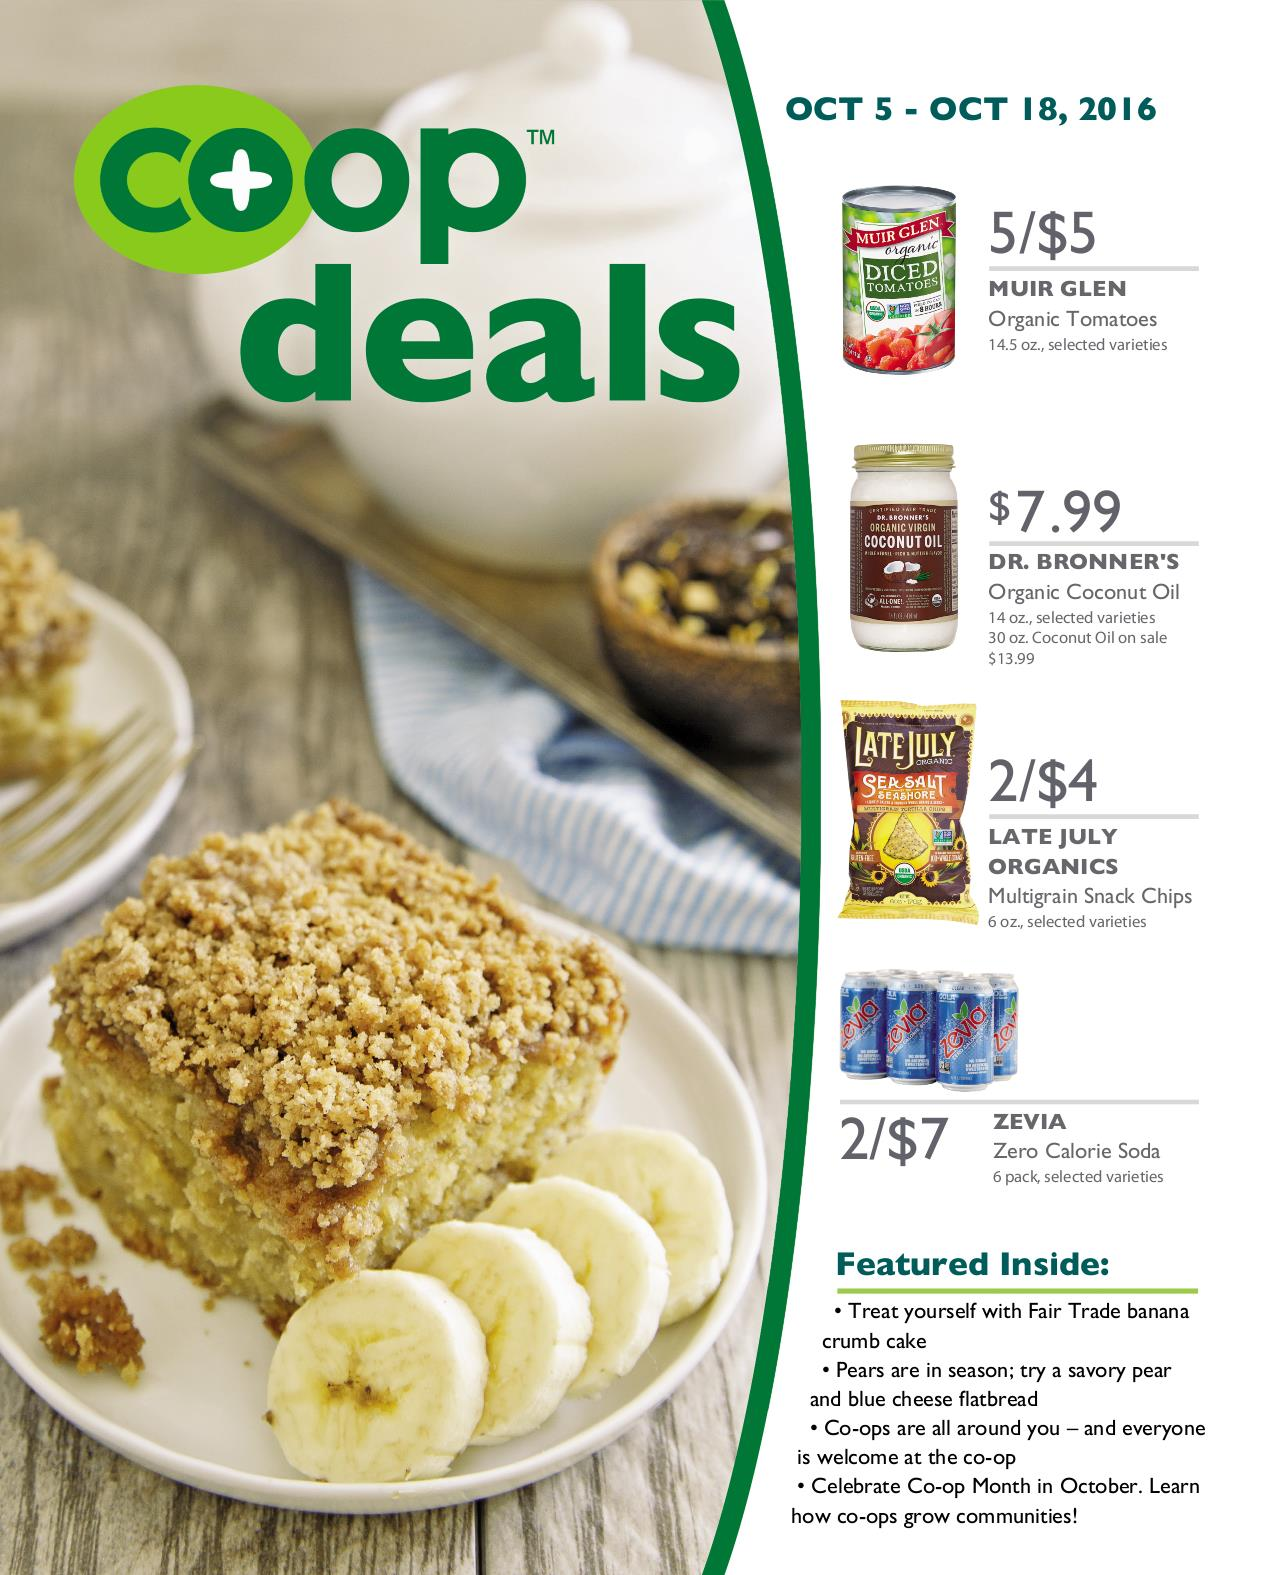 coop_deals_oct_2016_flyer_east_zone_1_2_3_a_page_1